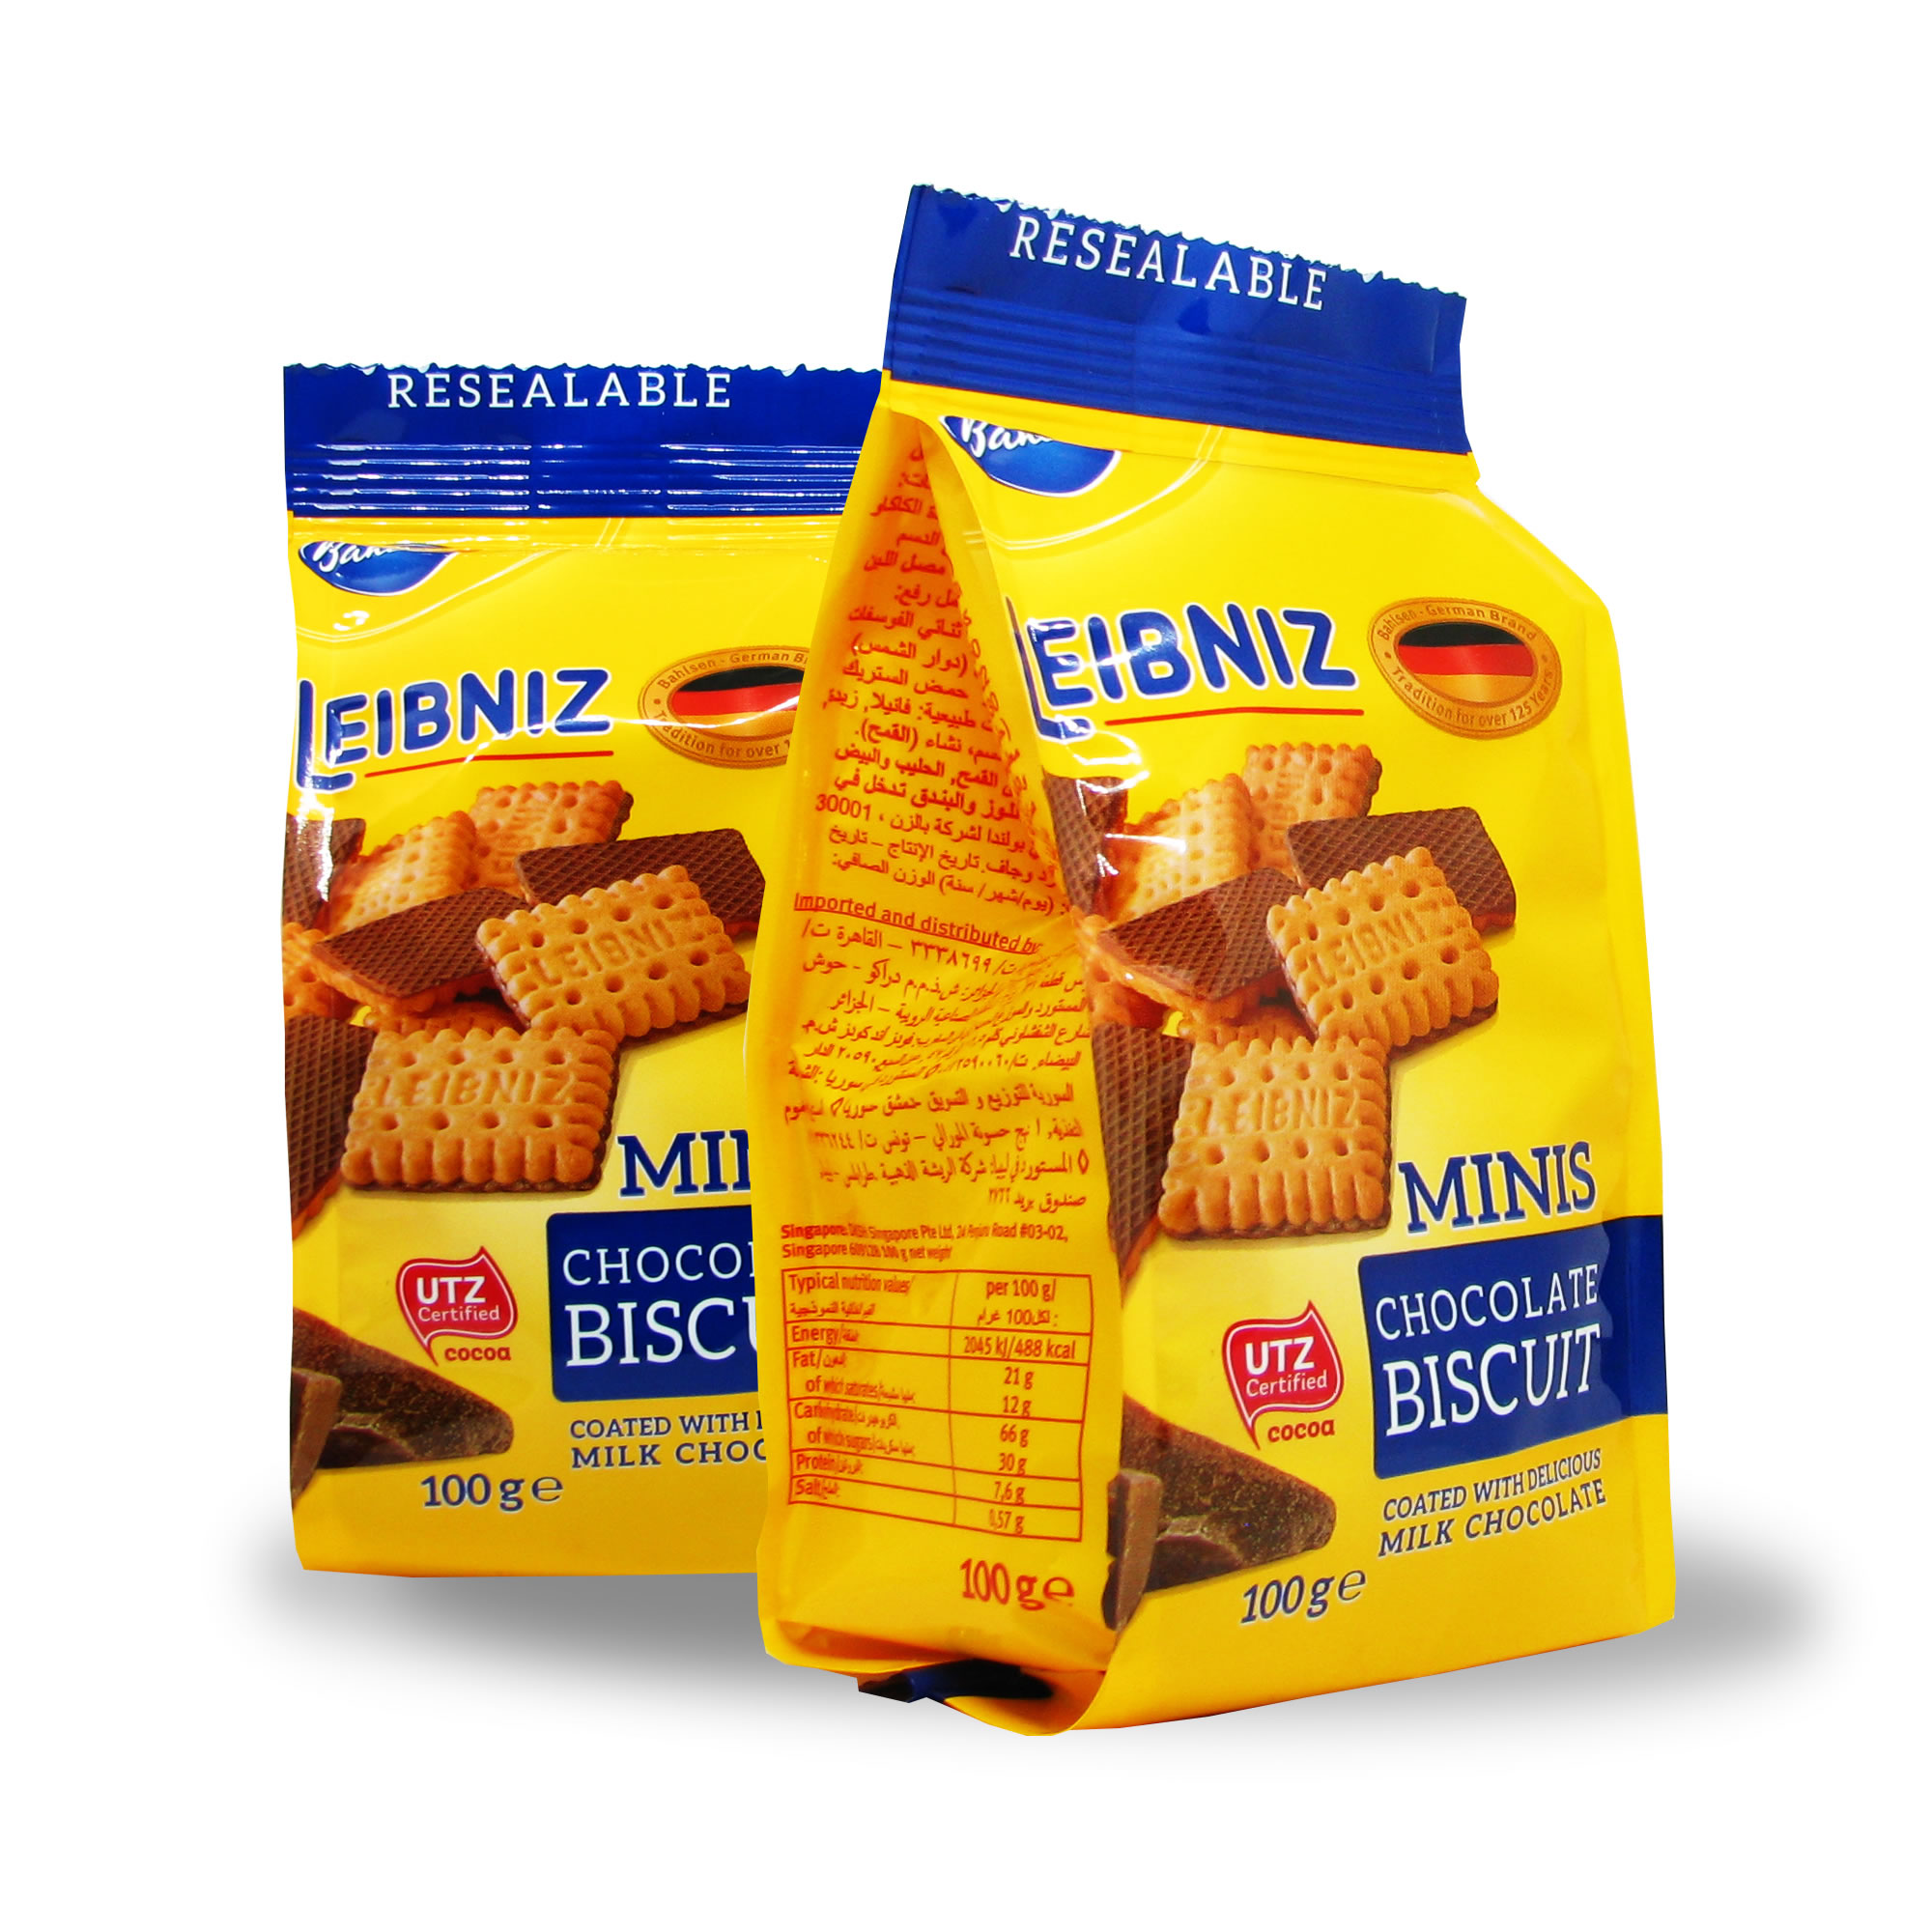 Печенье Minis Chocolate Biscuit Leibniz